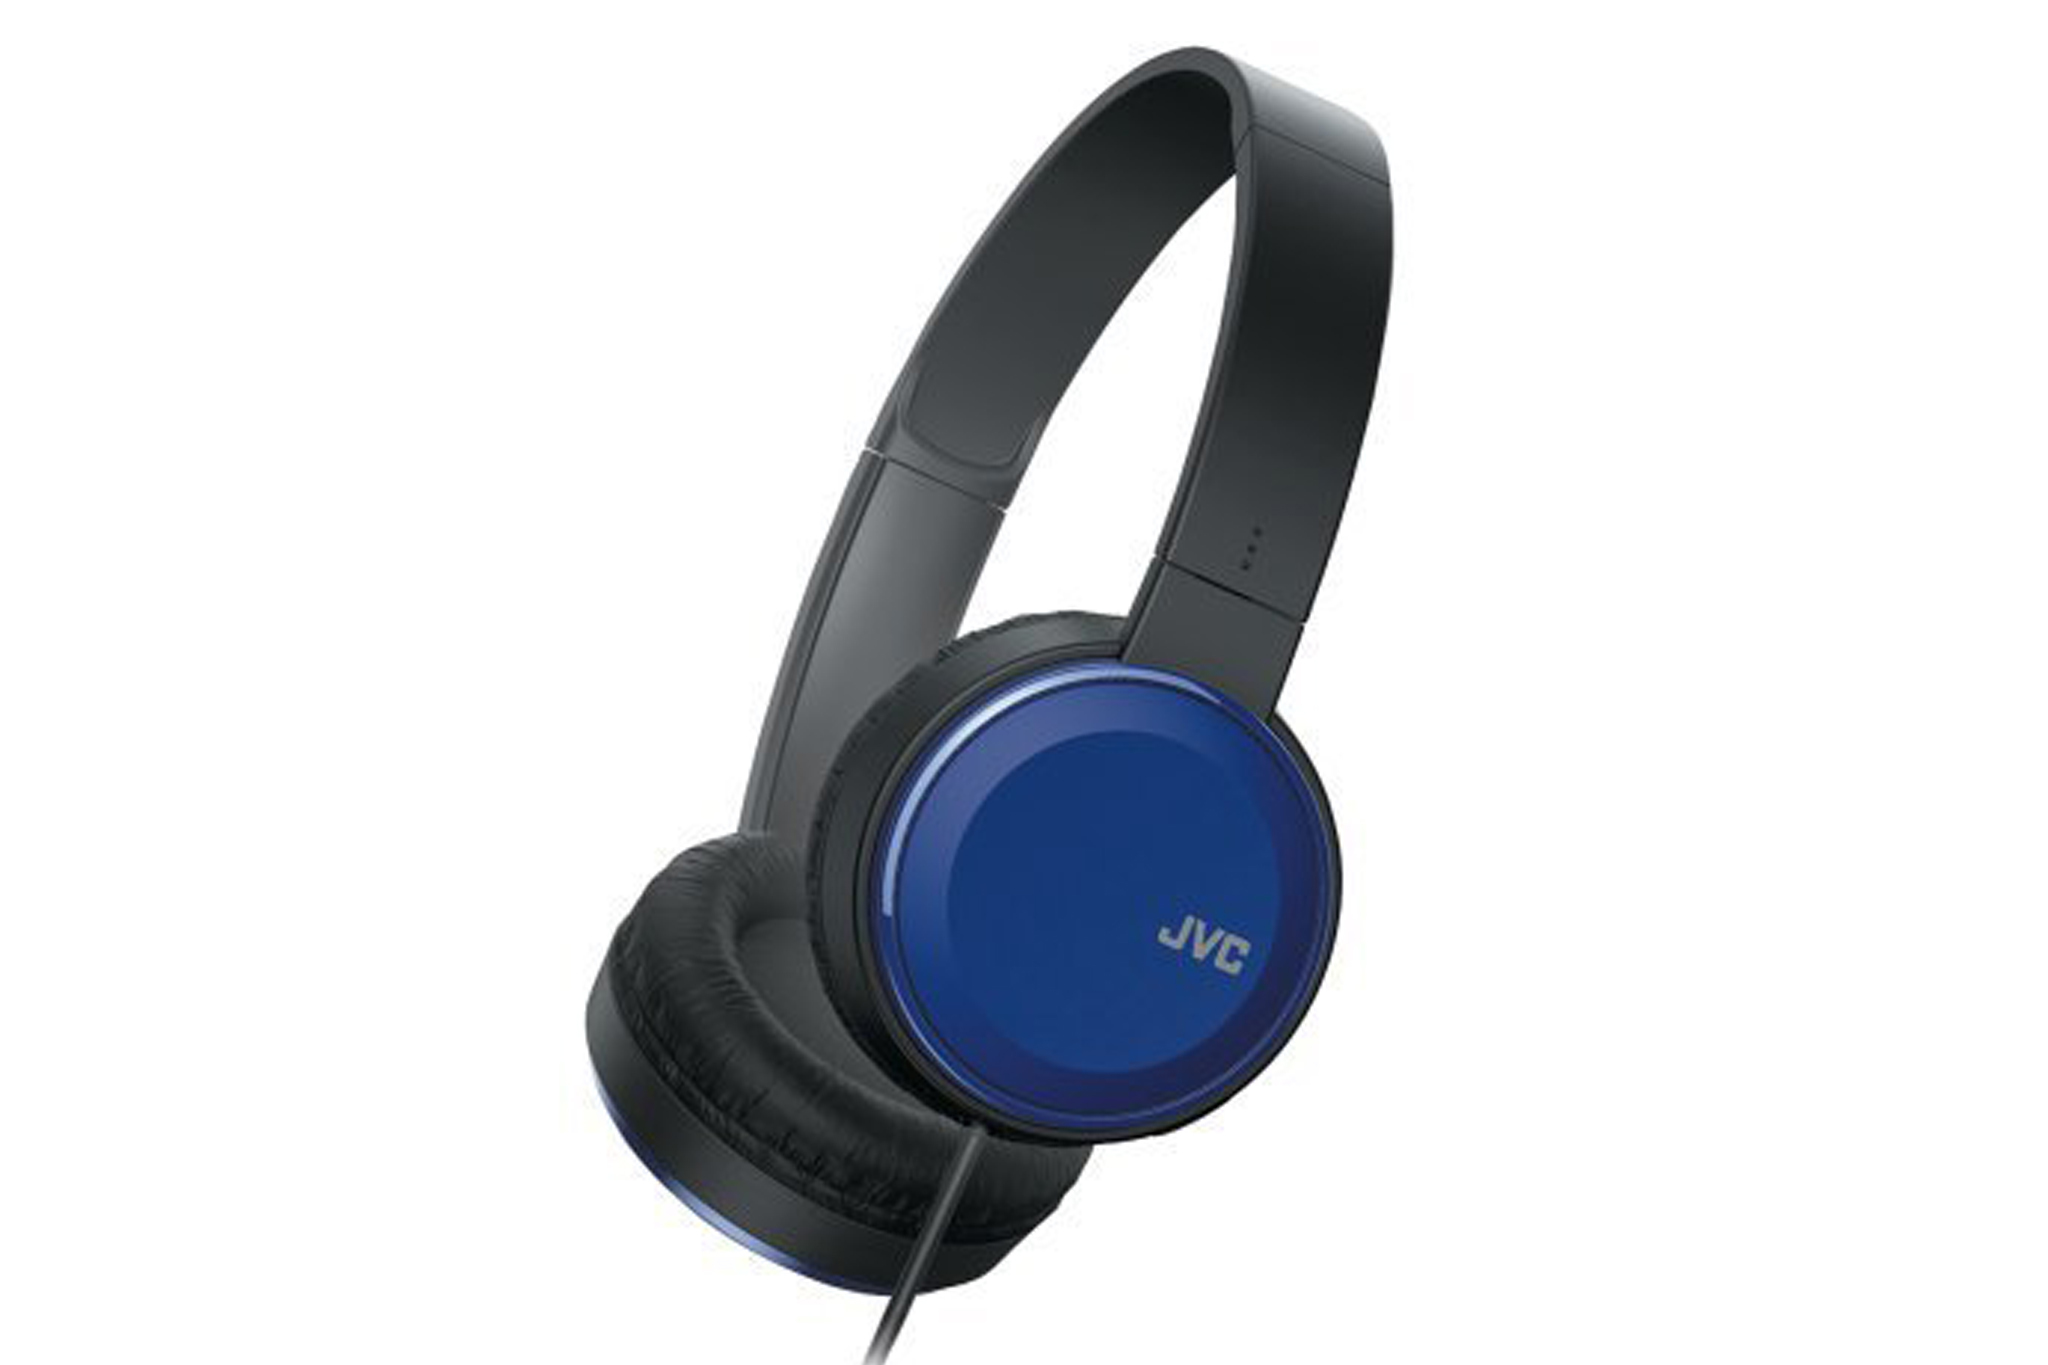 JVC Colorful On-Ear Headphones